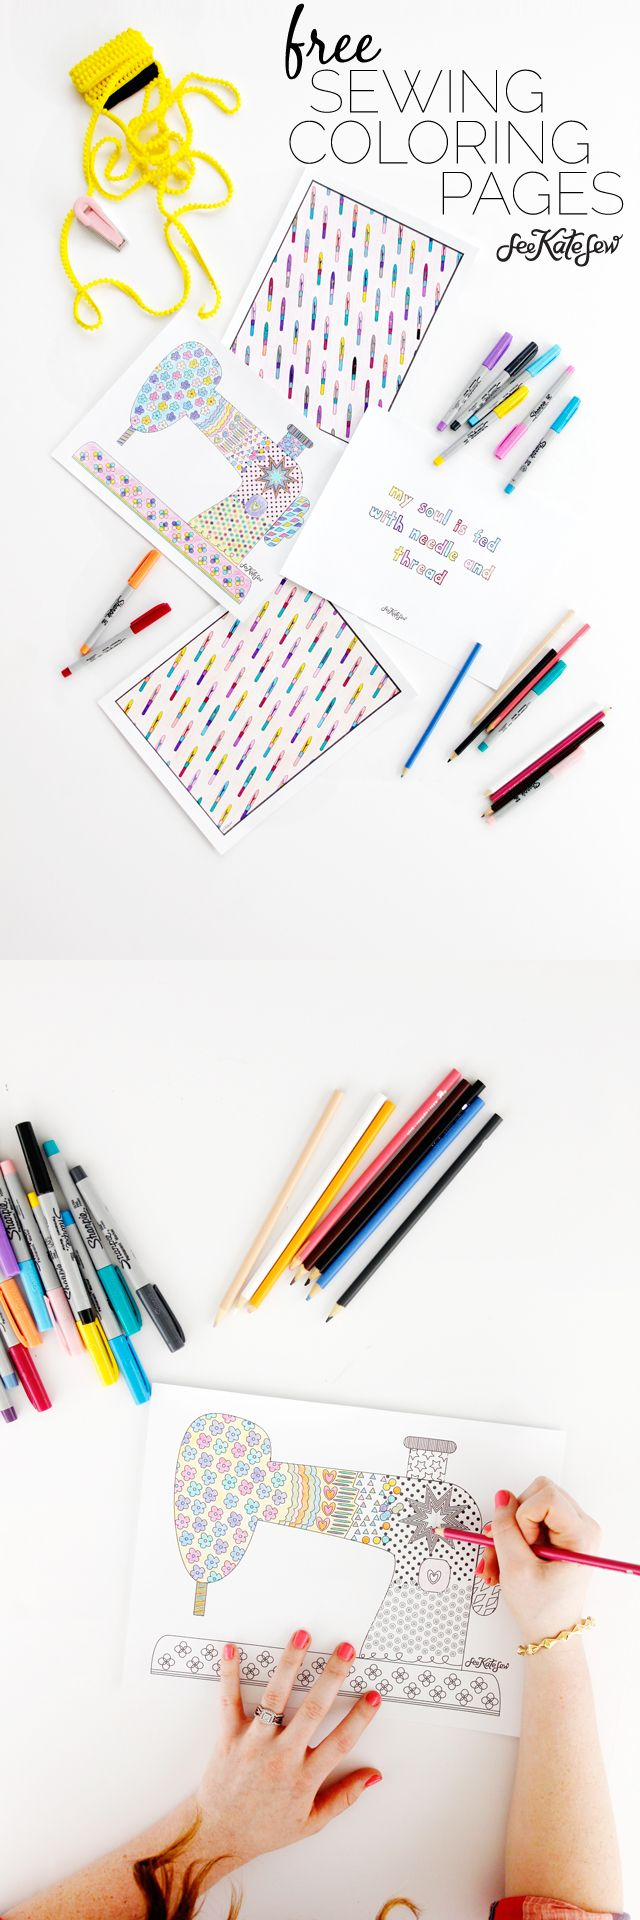 """The coloring page craze is going strong and I have to say I do love coloring! So I made up some sewing themed coloring pages for everyone to enjoy! There are 3 designs, a sewing machine, seam ripper pattern and a sewing quote. The sewing quote is one of my favorites, """"My soul is fed …"""